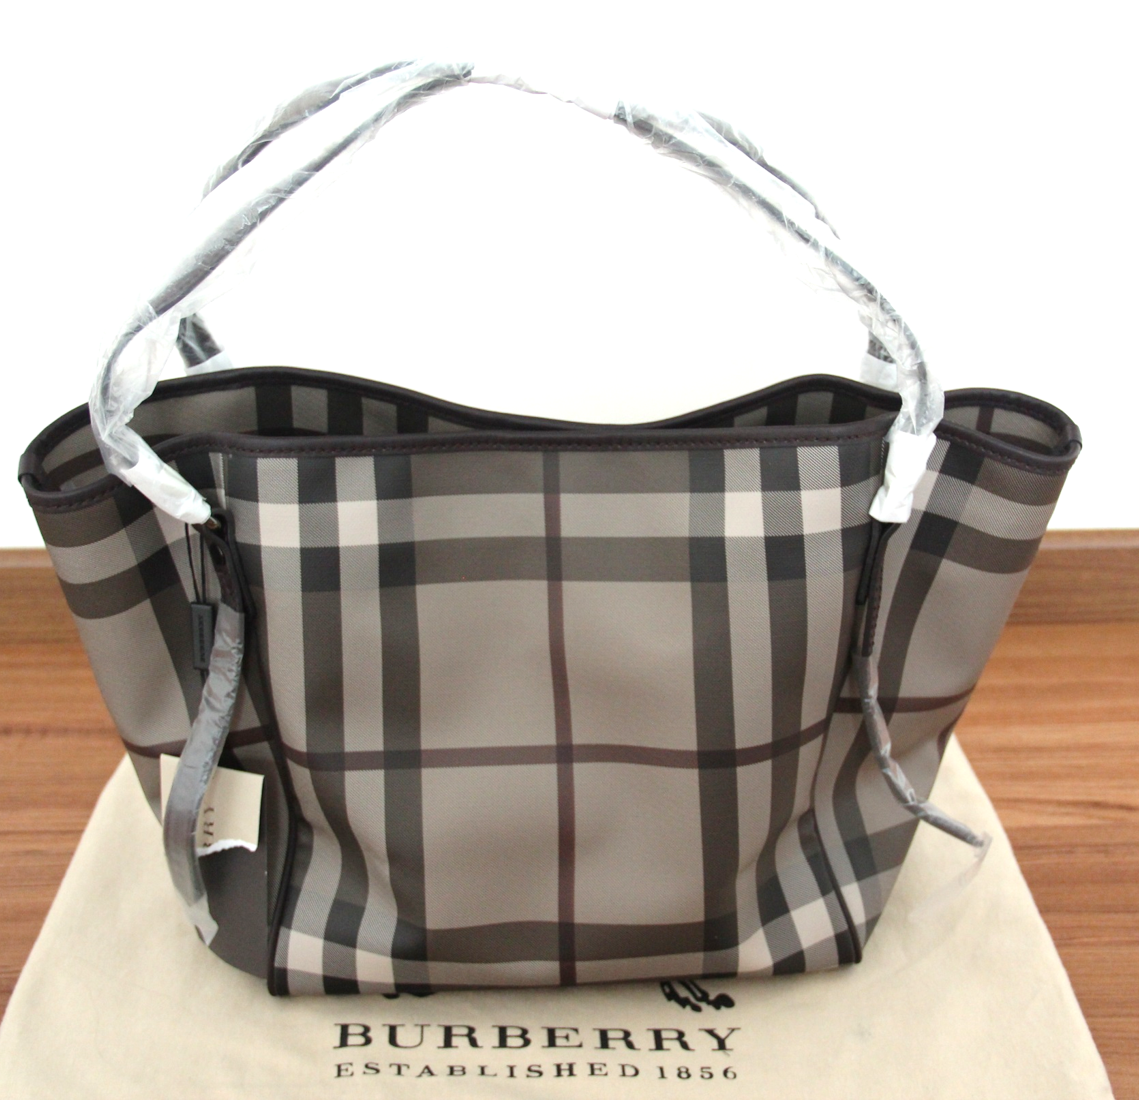 amore venti burberry smoked check tote for sale 950. Black Bedroom Furniture Sets. Home Design Ideas